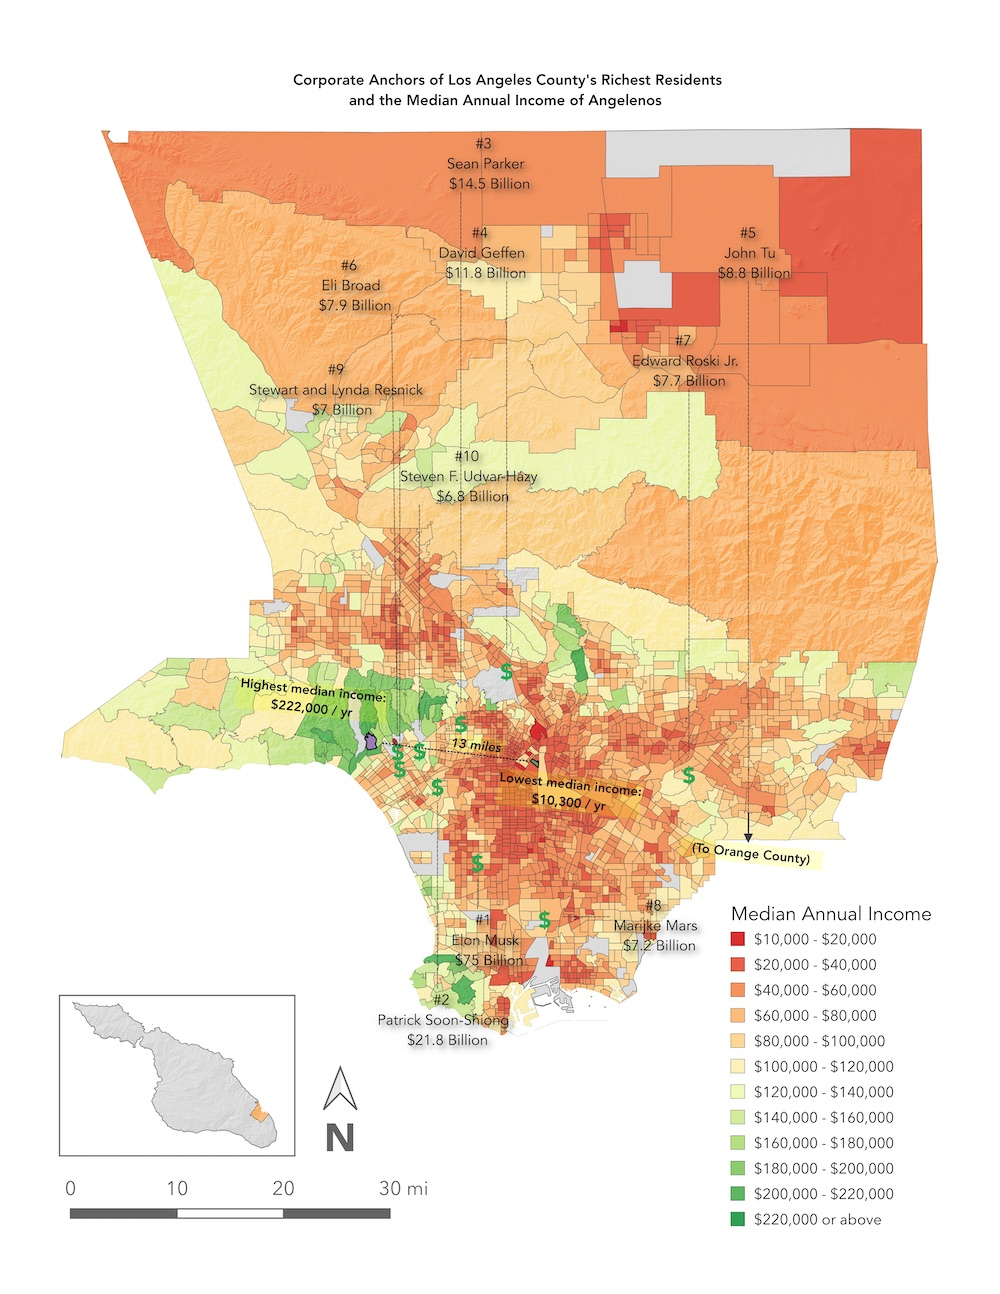 A map of the businesses of the 10 richest Angelenos